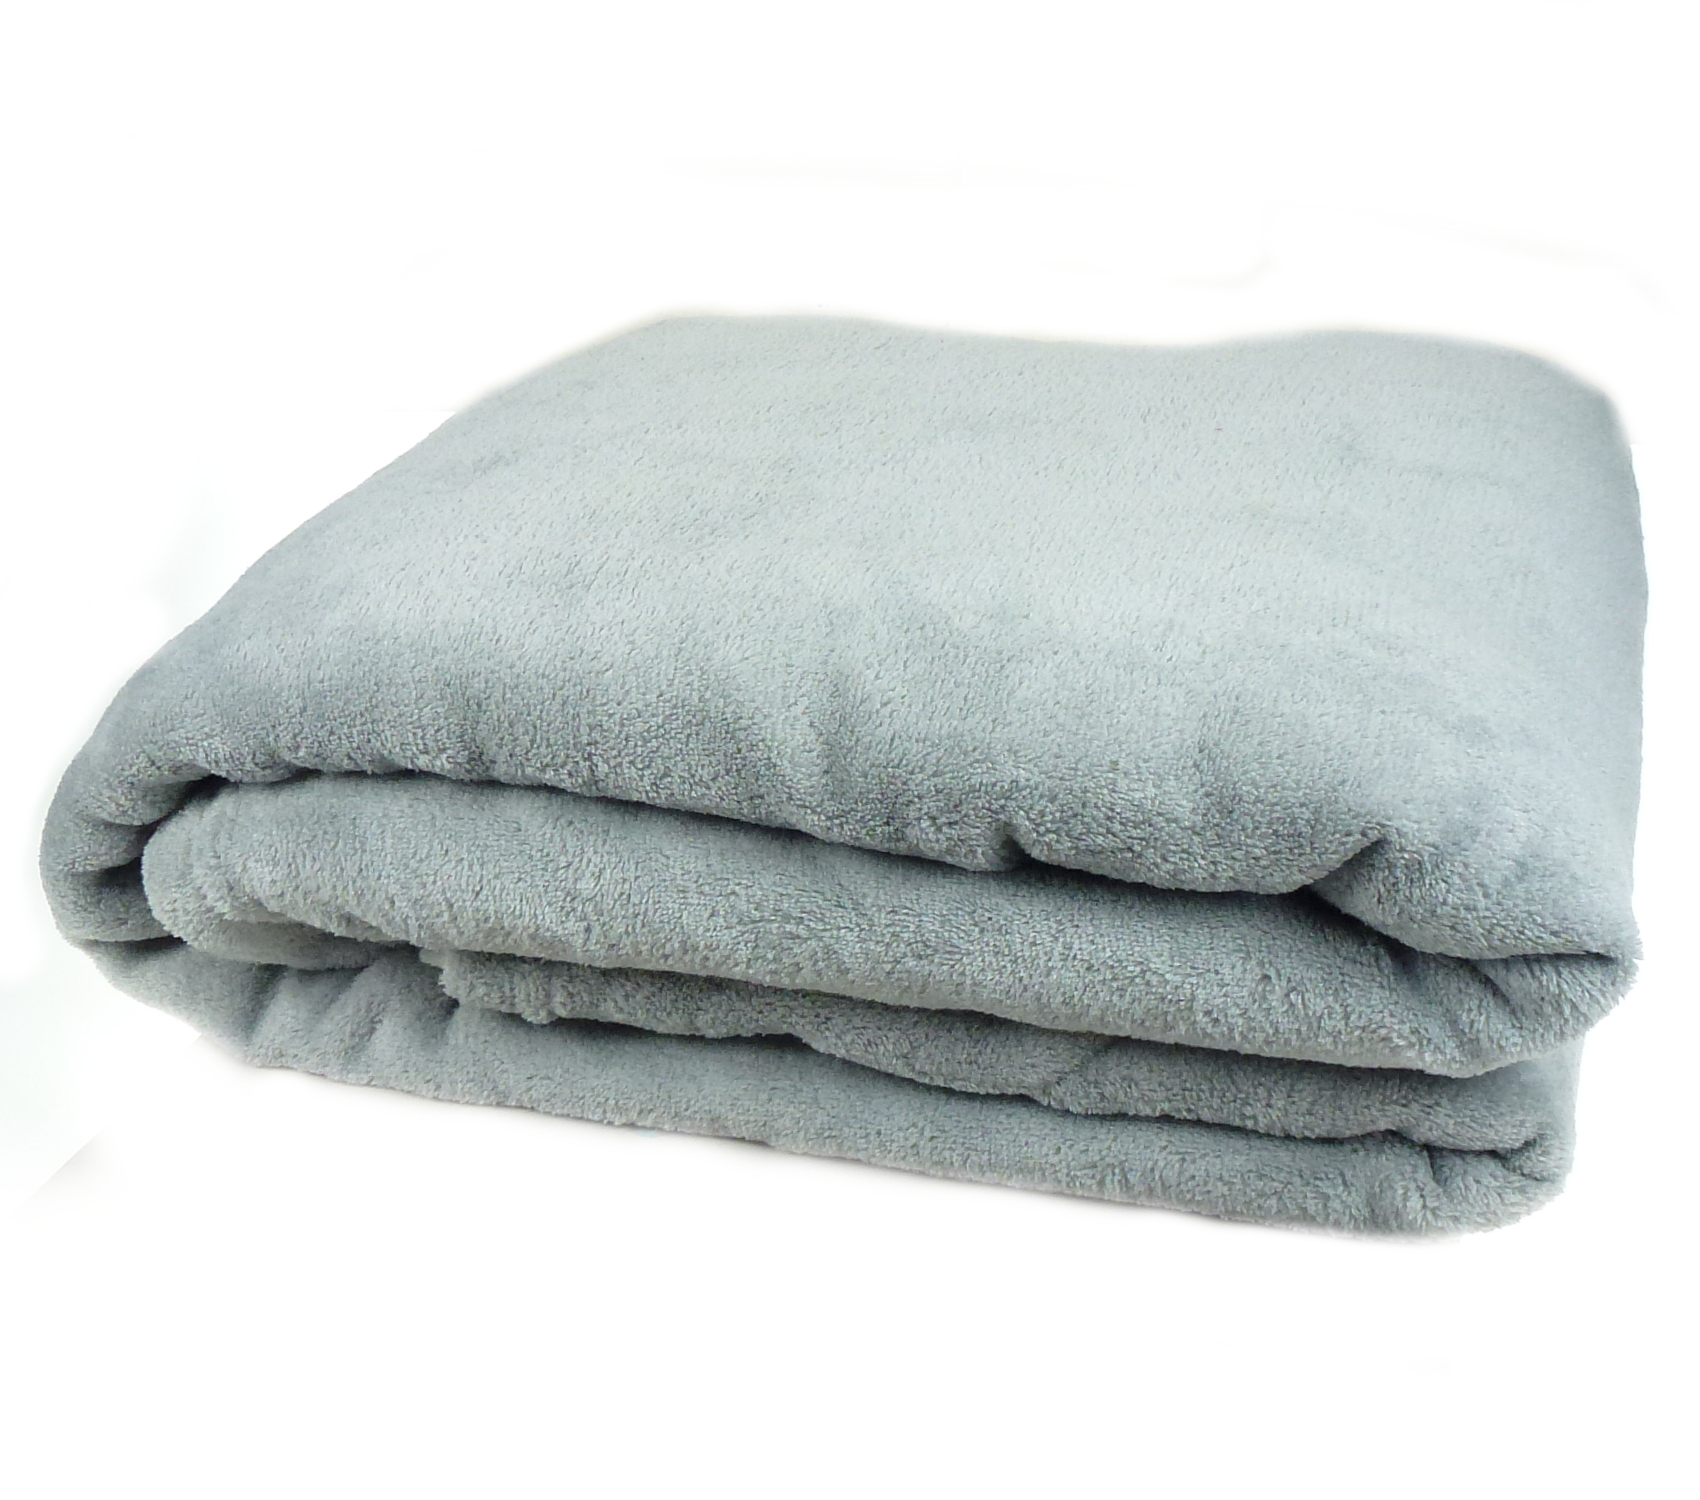 This super soft throw blanket does not shed, fade, shrinkage or pilling. Italian Luxury Egyptian Luxury Super Soft Faux Fur Throw Blanket - Elegant Cozy Hypoallergenic Ultra Plush Machine Washable Shaggy Fleece Blanket - 60